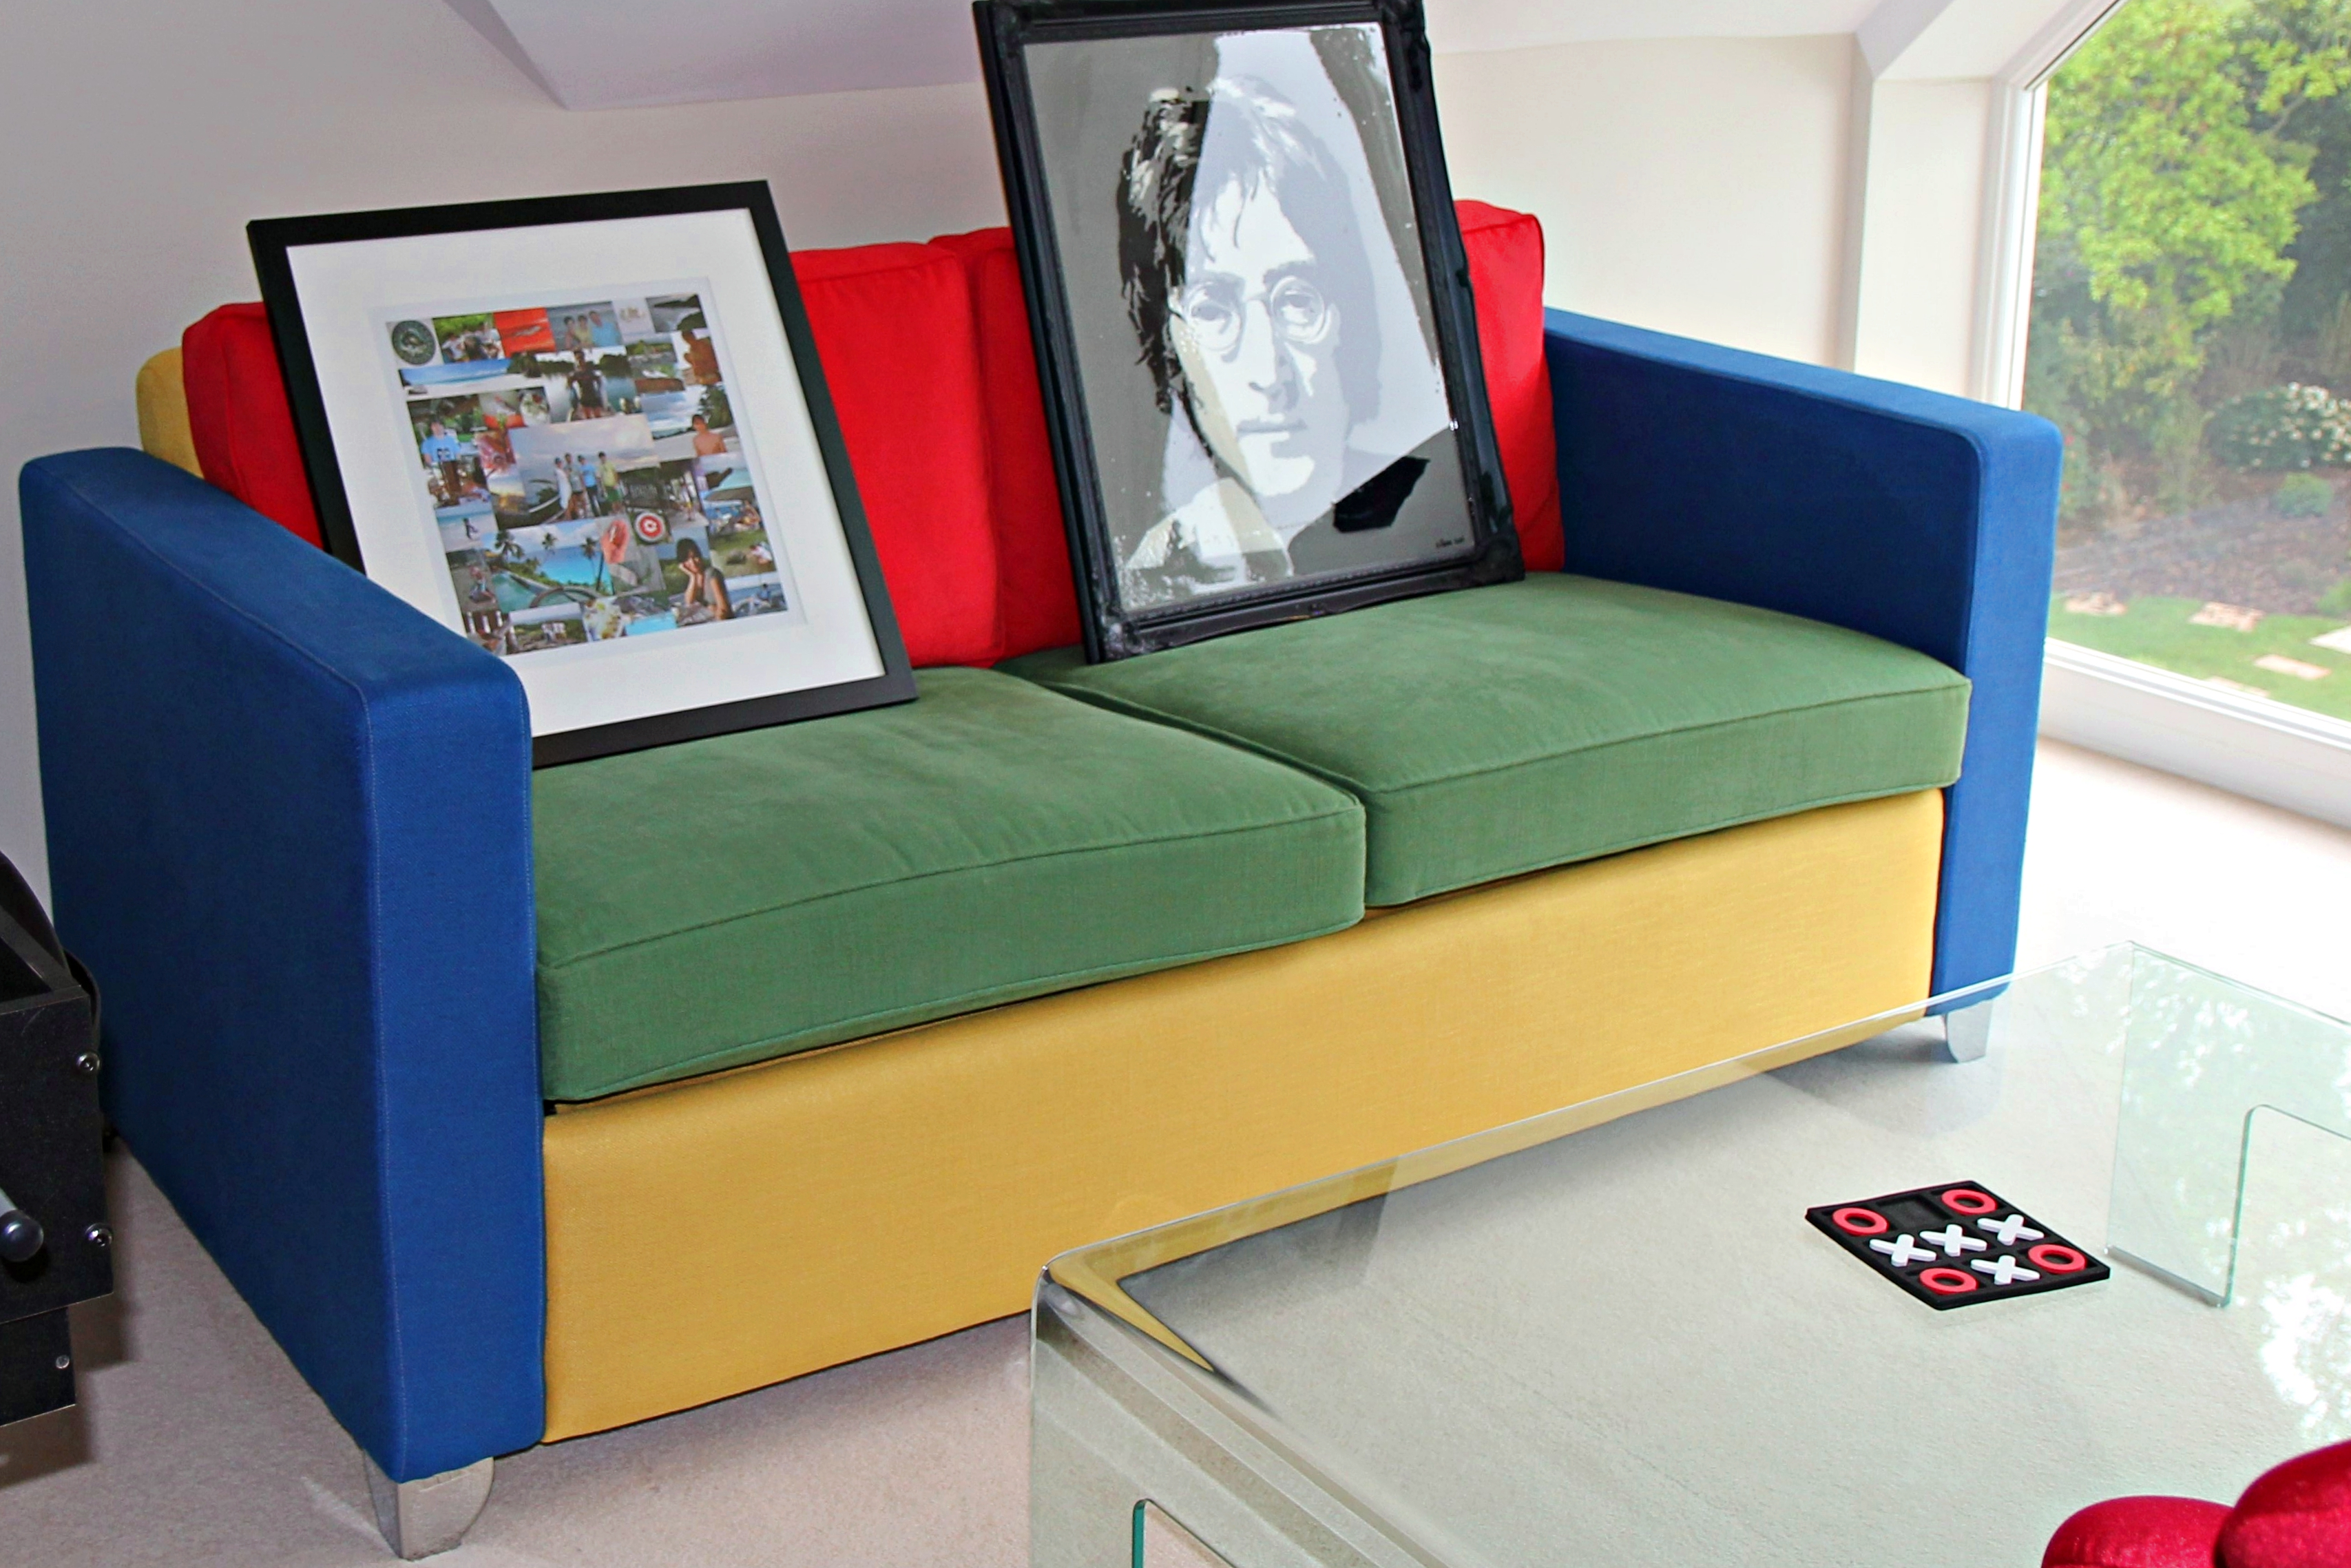 Bespoke Sofa for Games Room